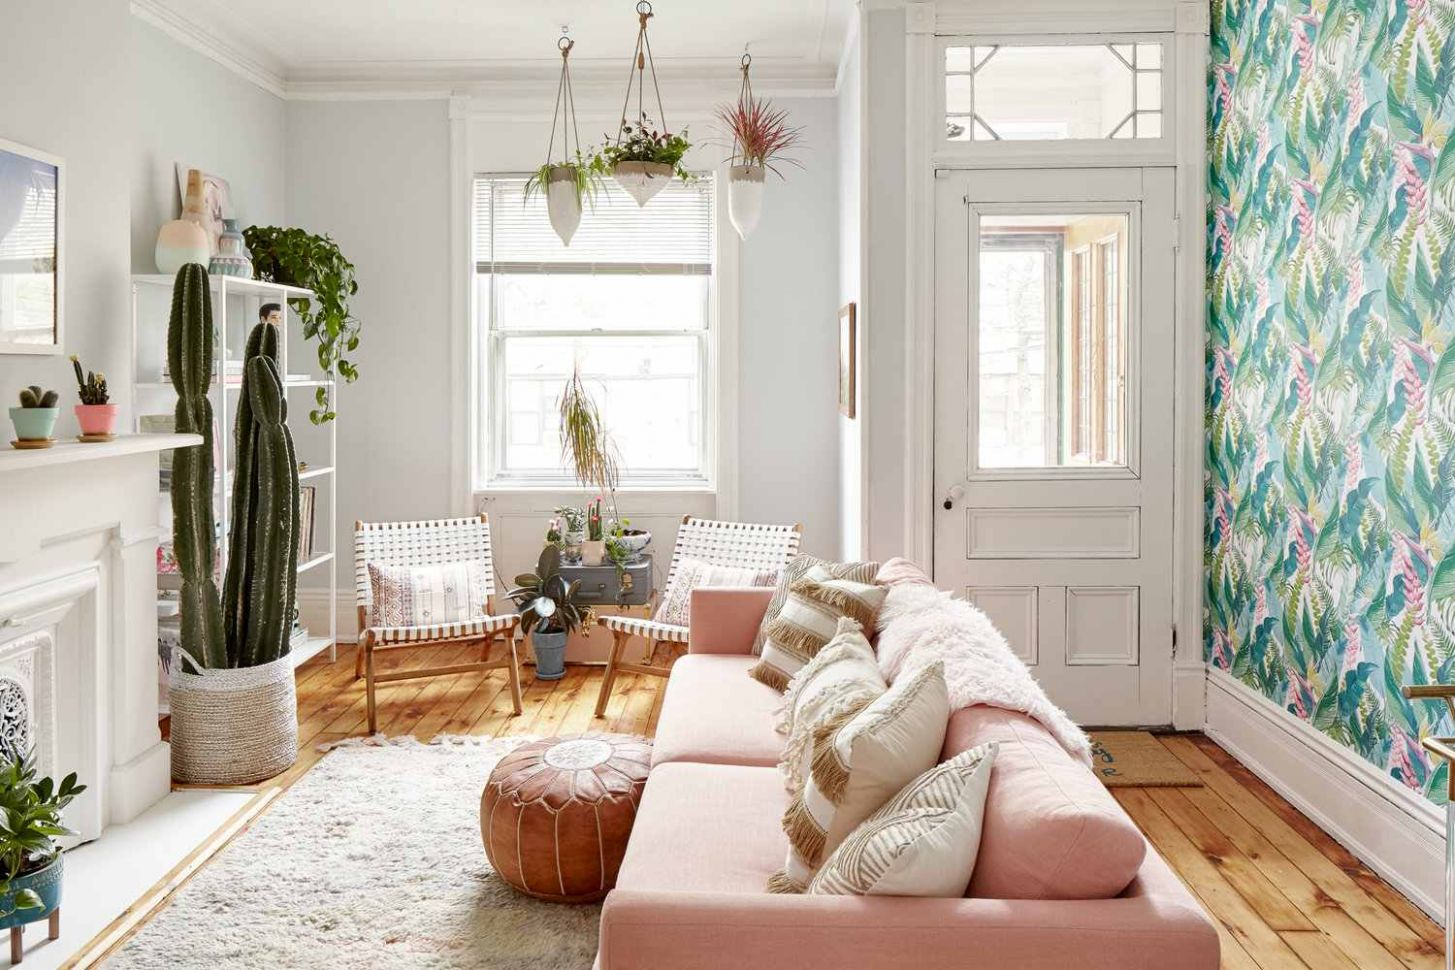 12 Simple Small Living Room Ideas Brimming With Style - 11 x 18 living room ideas